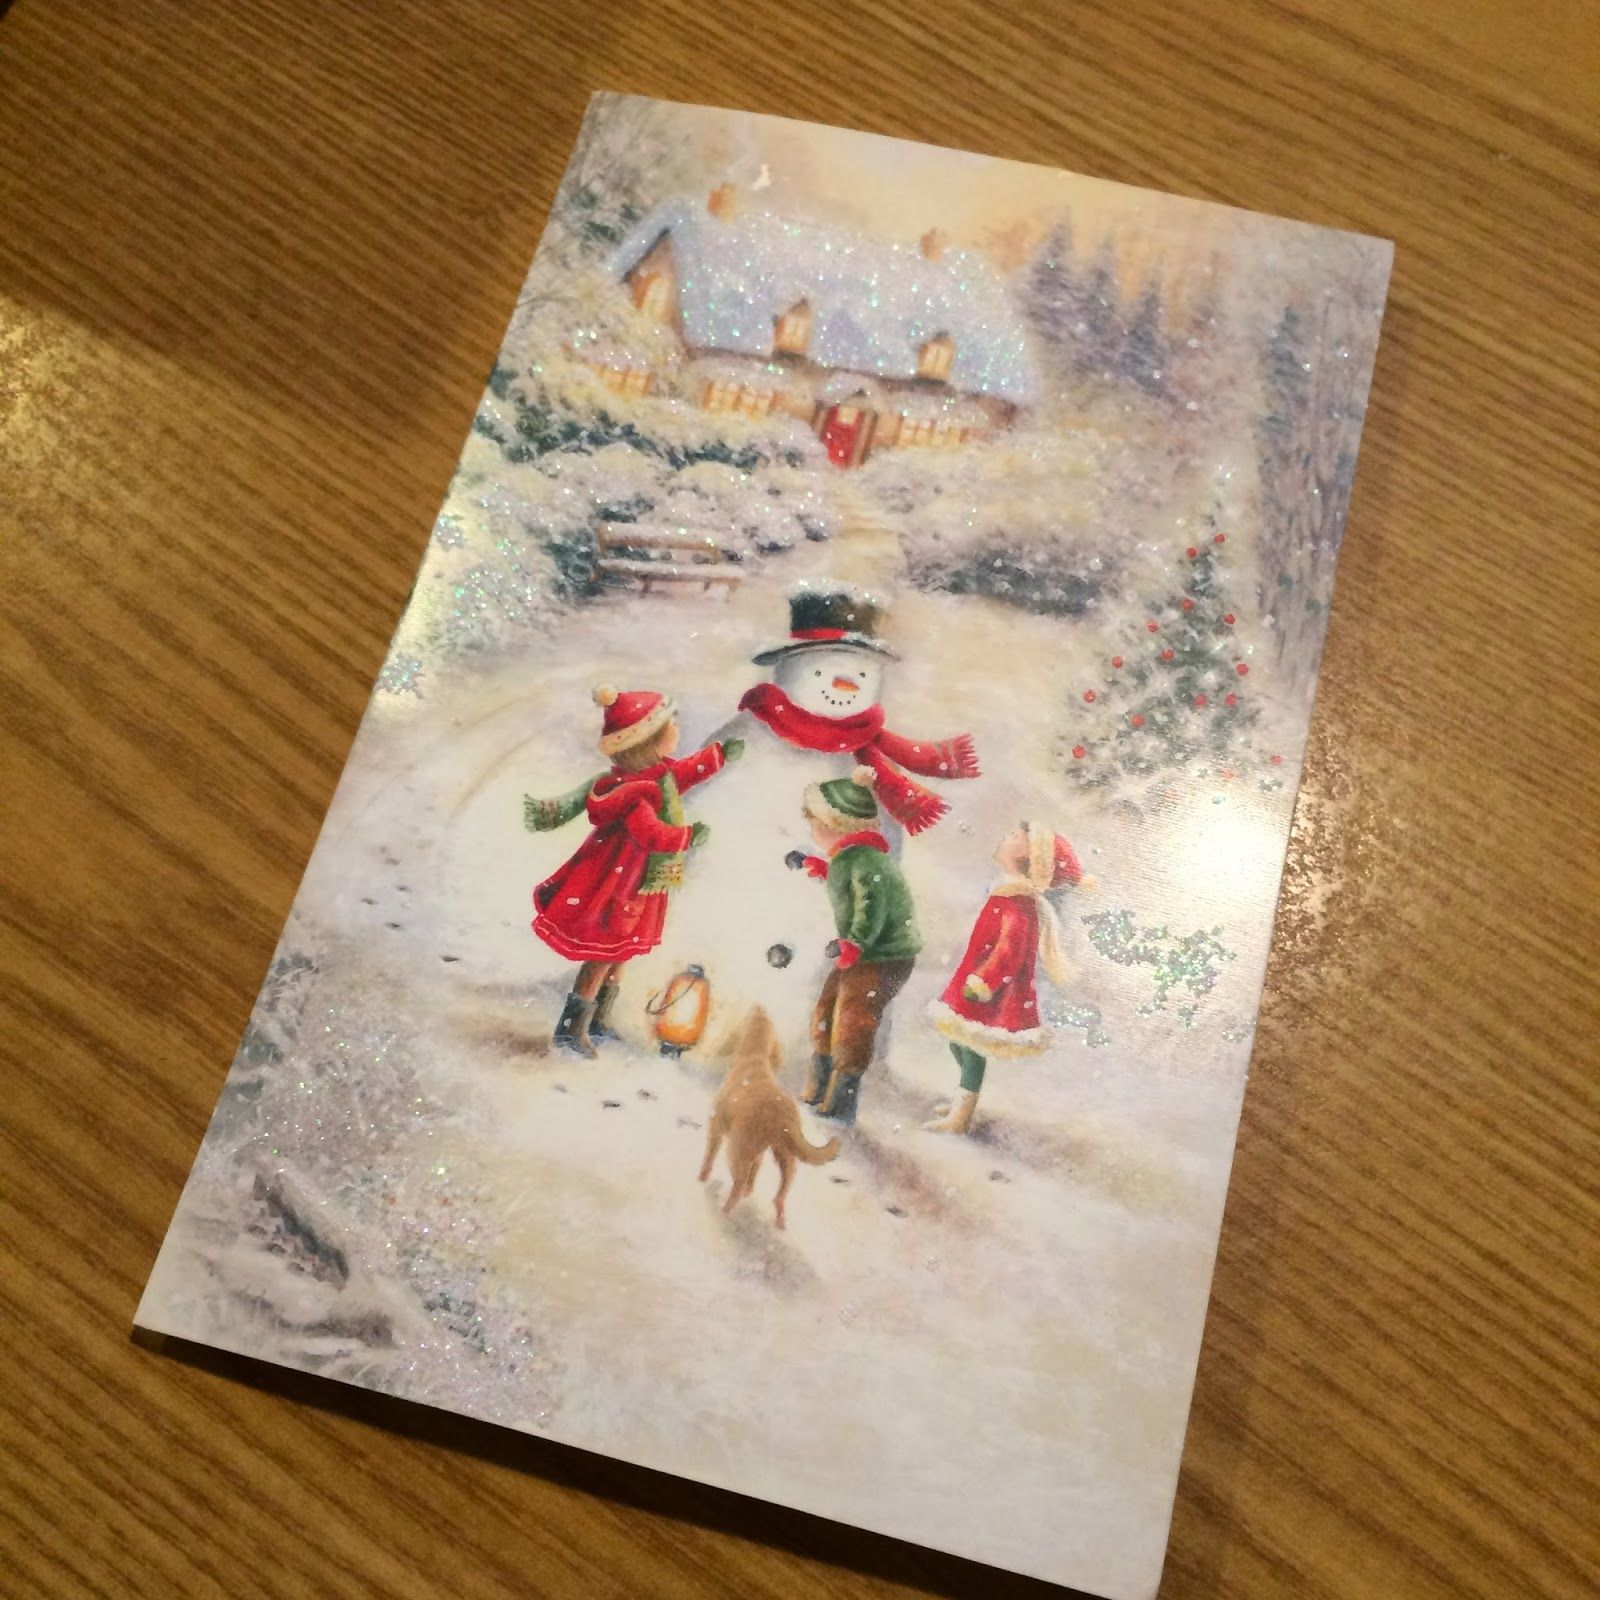 Pumpkin Princess Pudding Pie: What To Do With Old Christmas Cards?